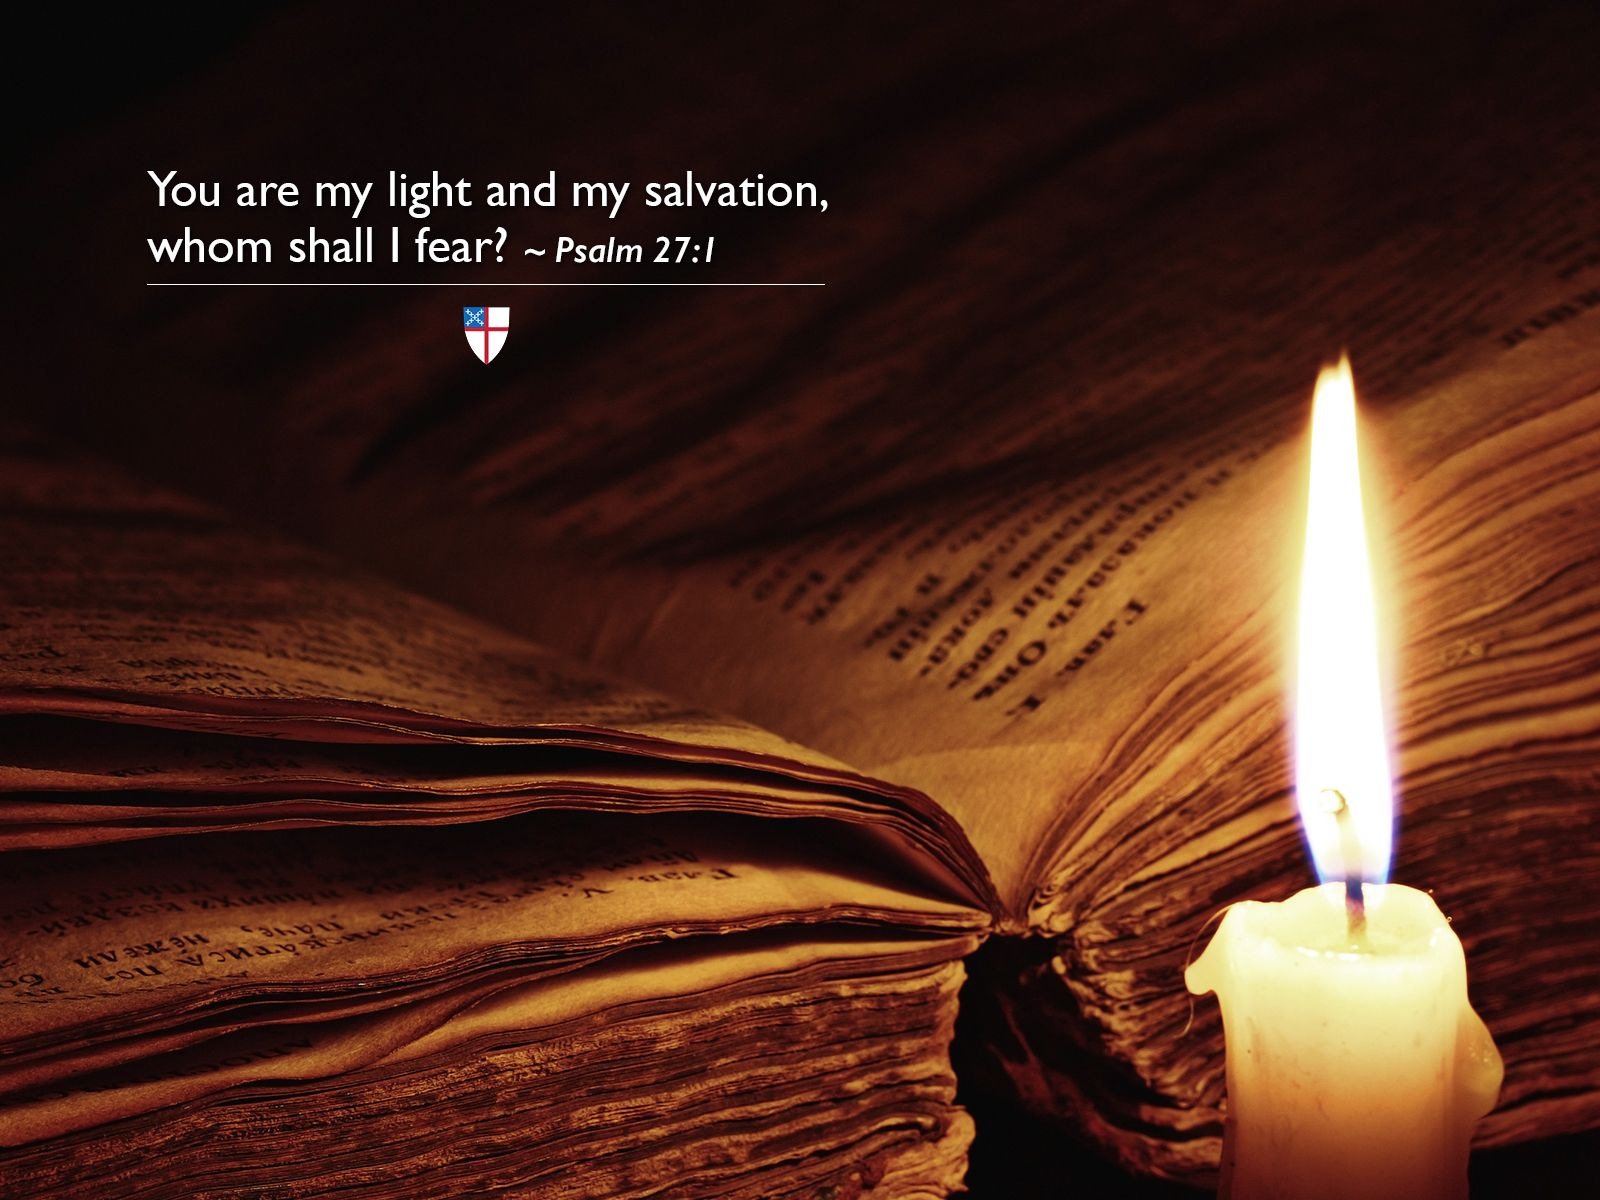 You are my light and my salvation, whom shall I fear